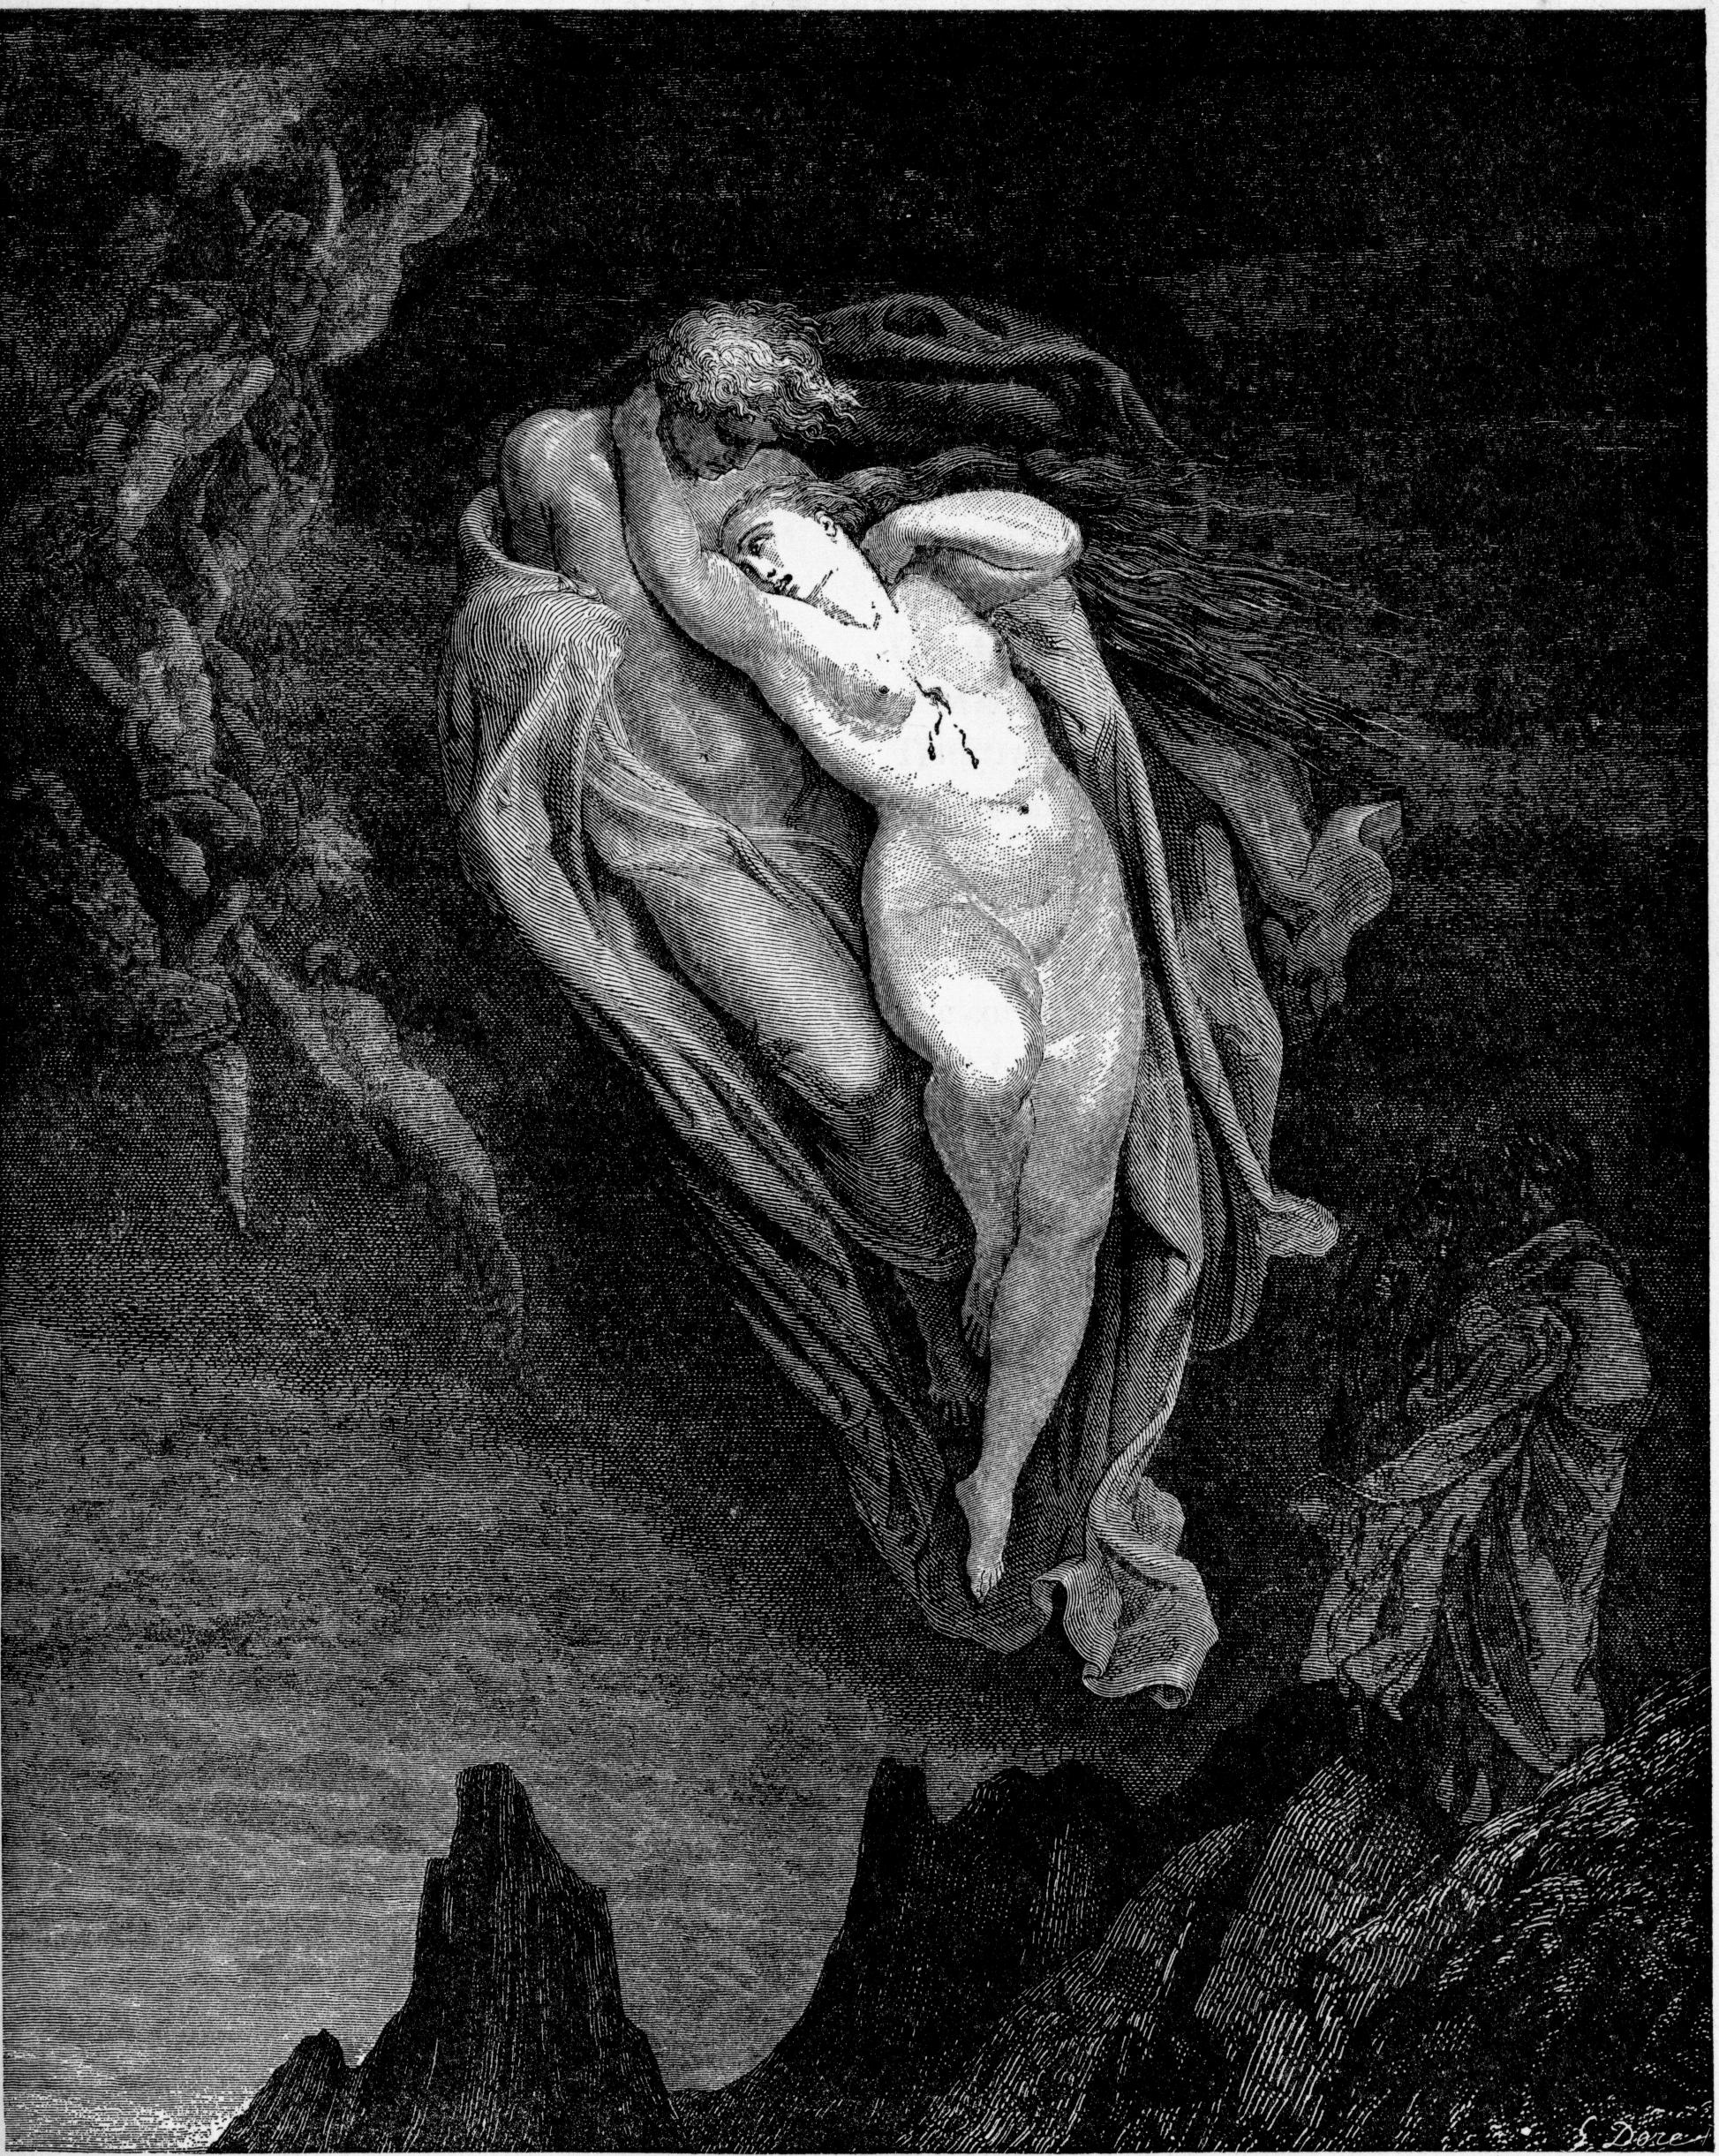 Dore's image of Francesca and Paolo from Dante's Inferno.